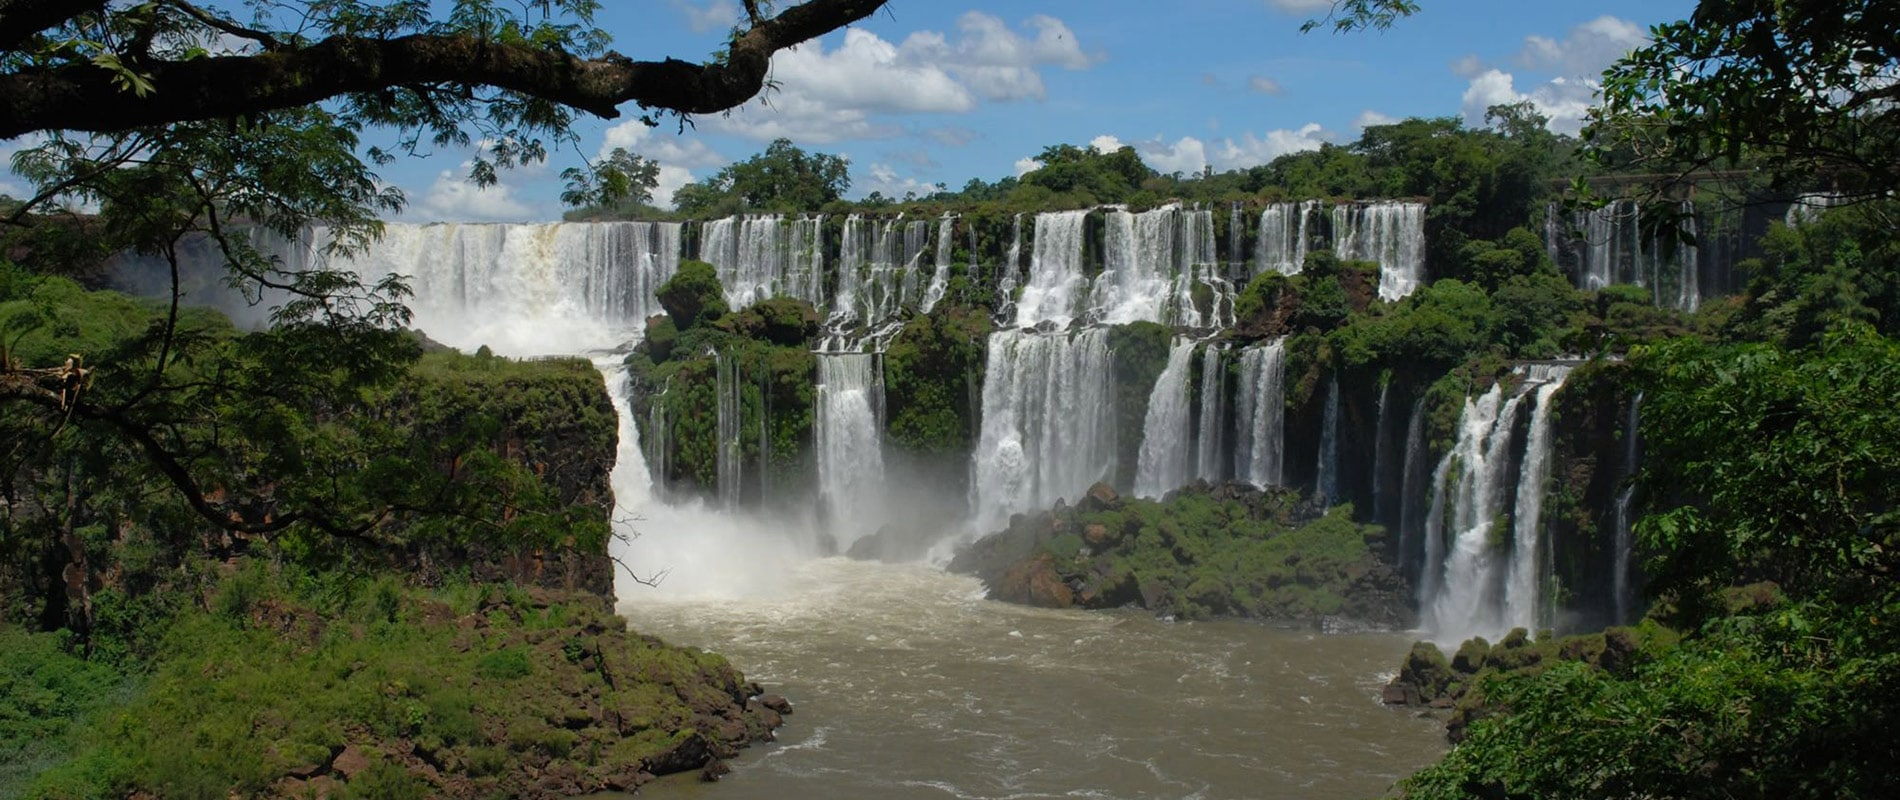 argentine chutes iguazu immersion nature cascade parc national cataratas